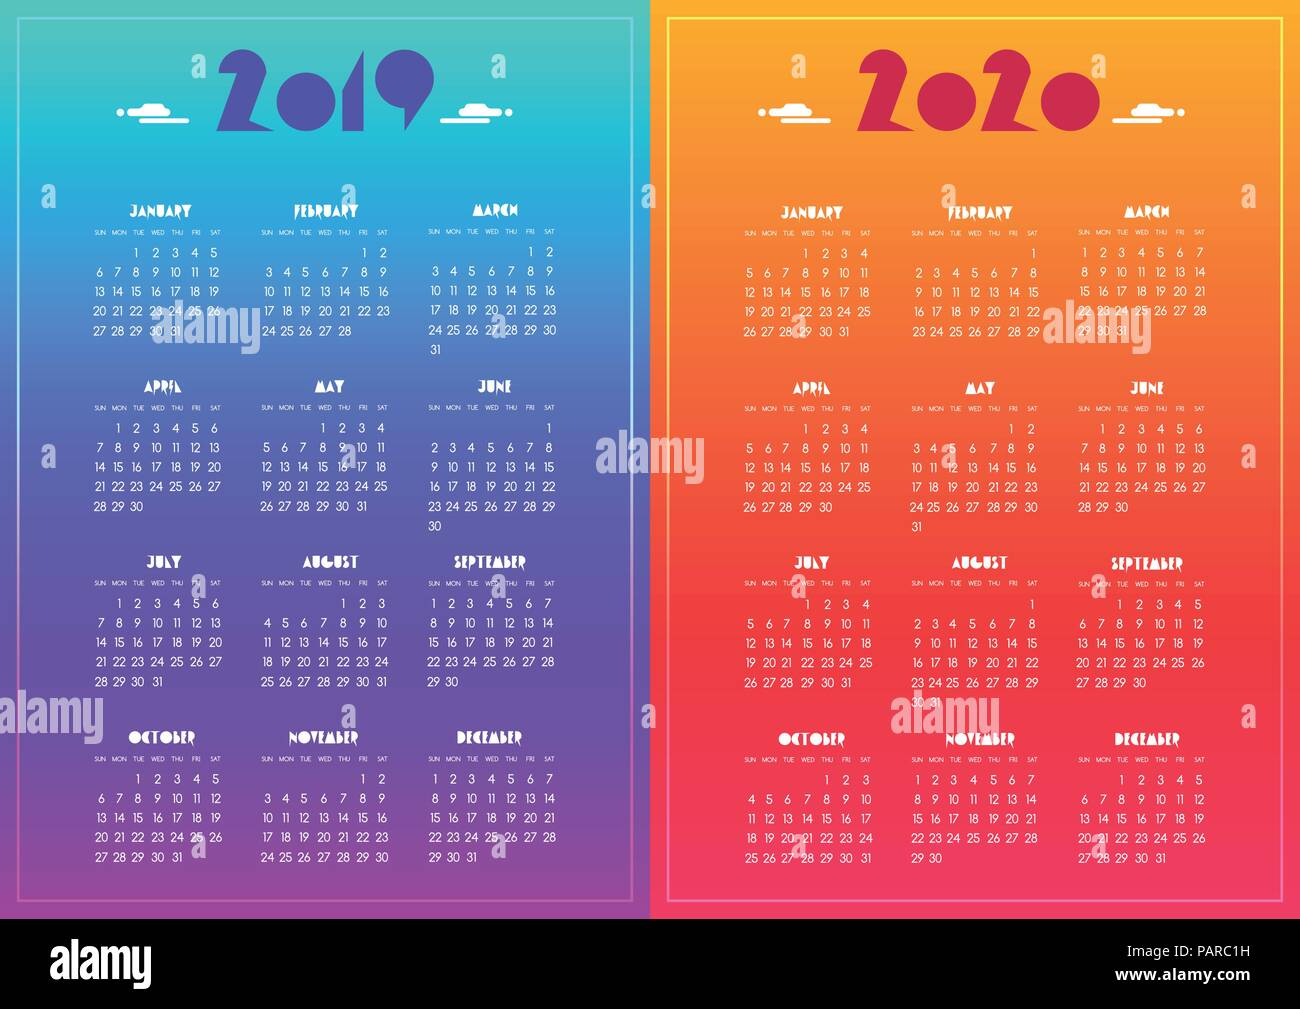 Events Calendar 2020.Fun Calendars 2020 Kozen Jasonkellyphoto Co